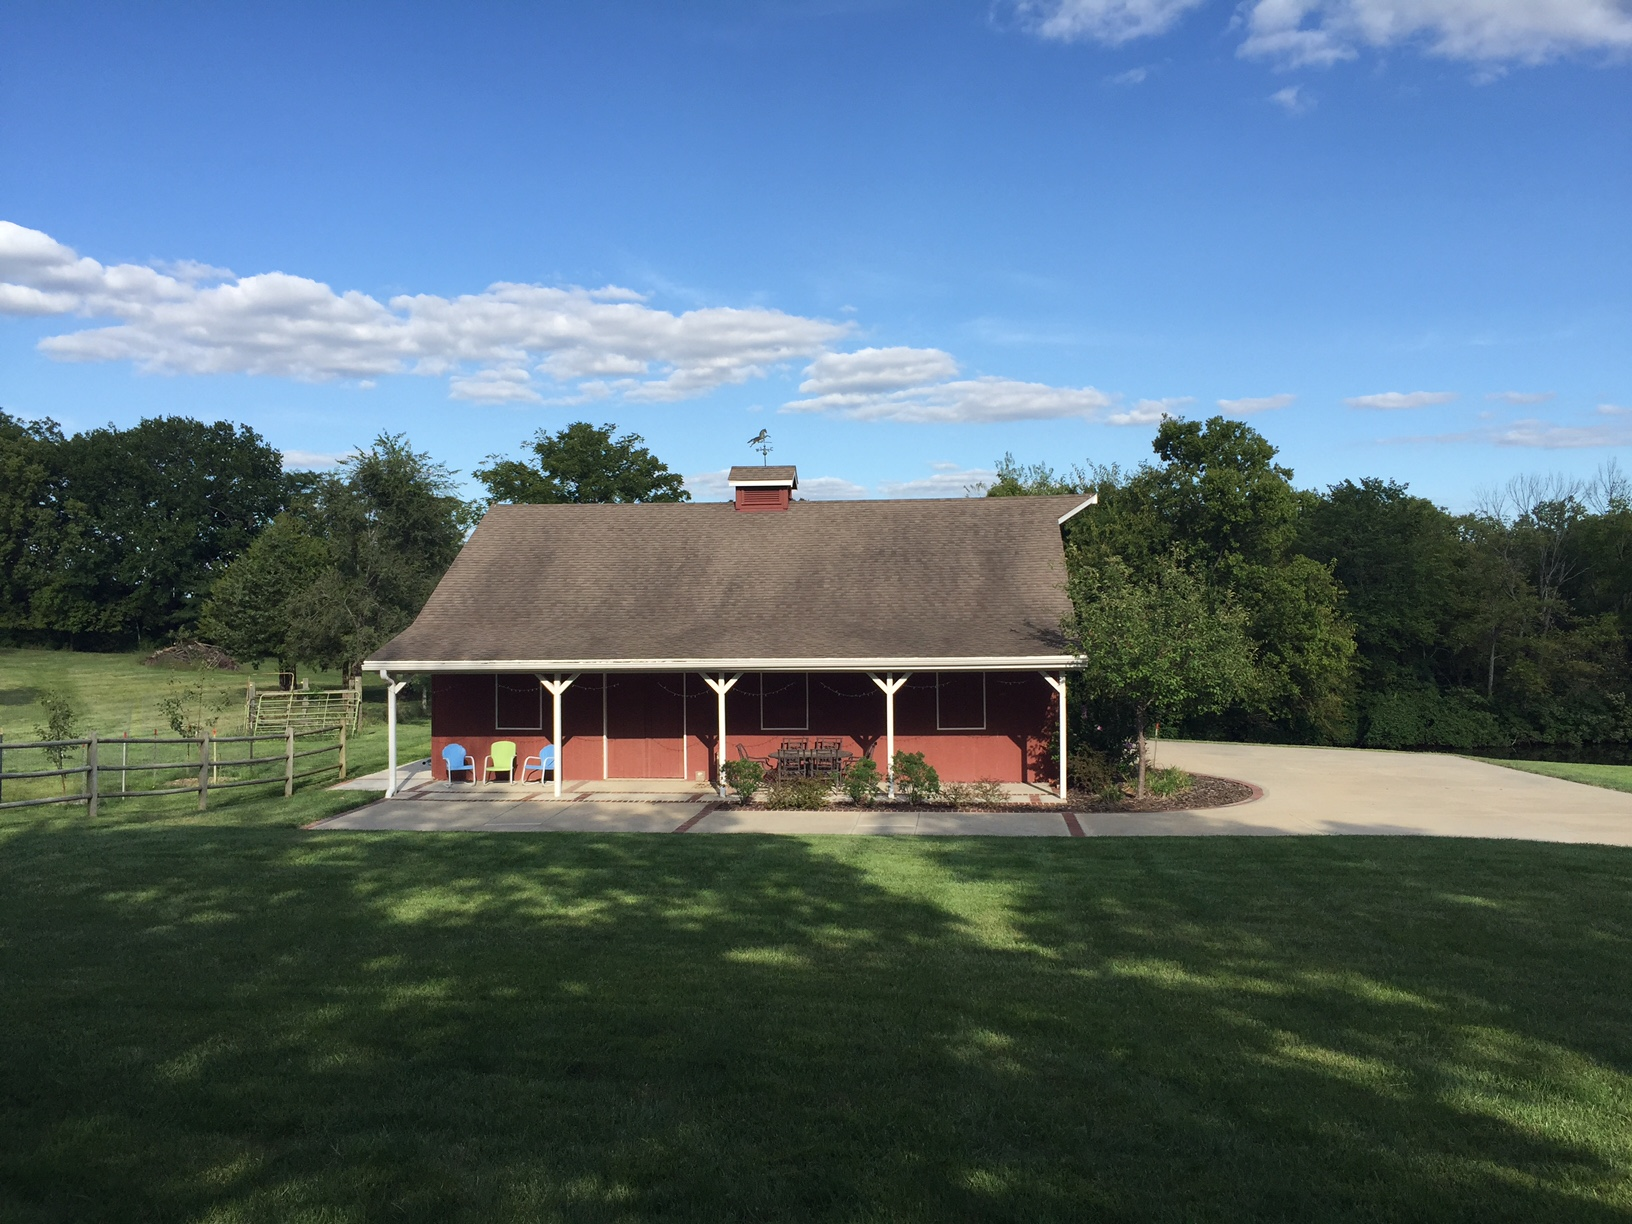 Matlack's barn & grounds